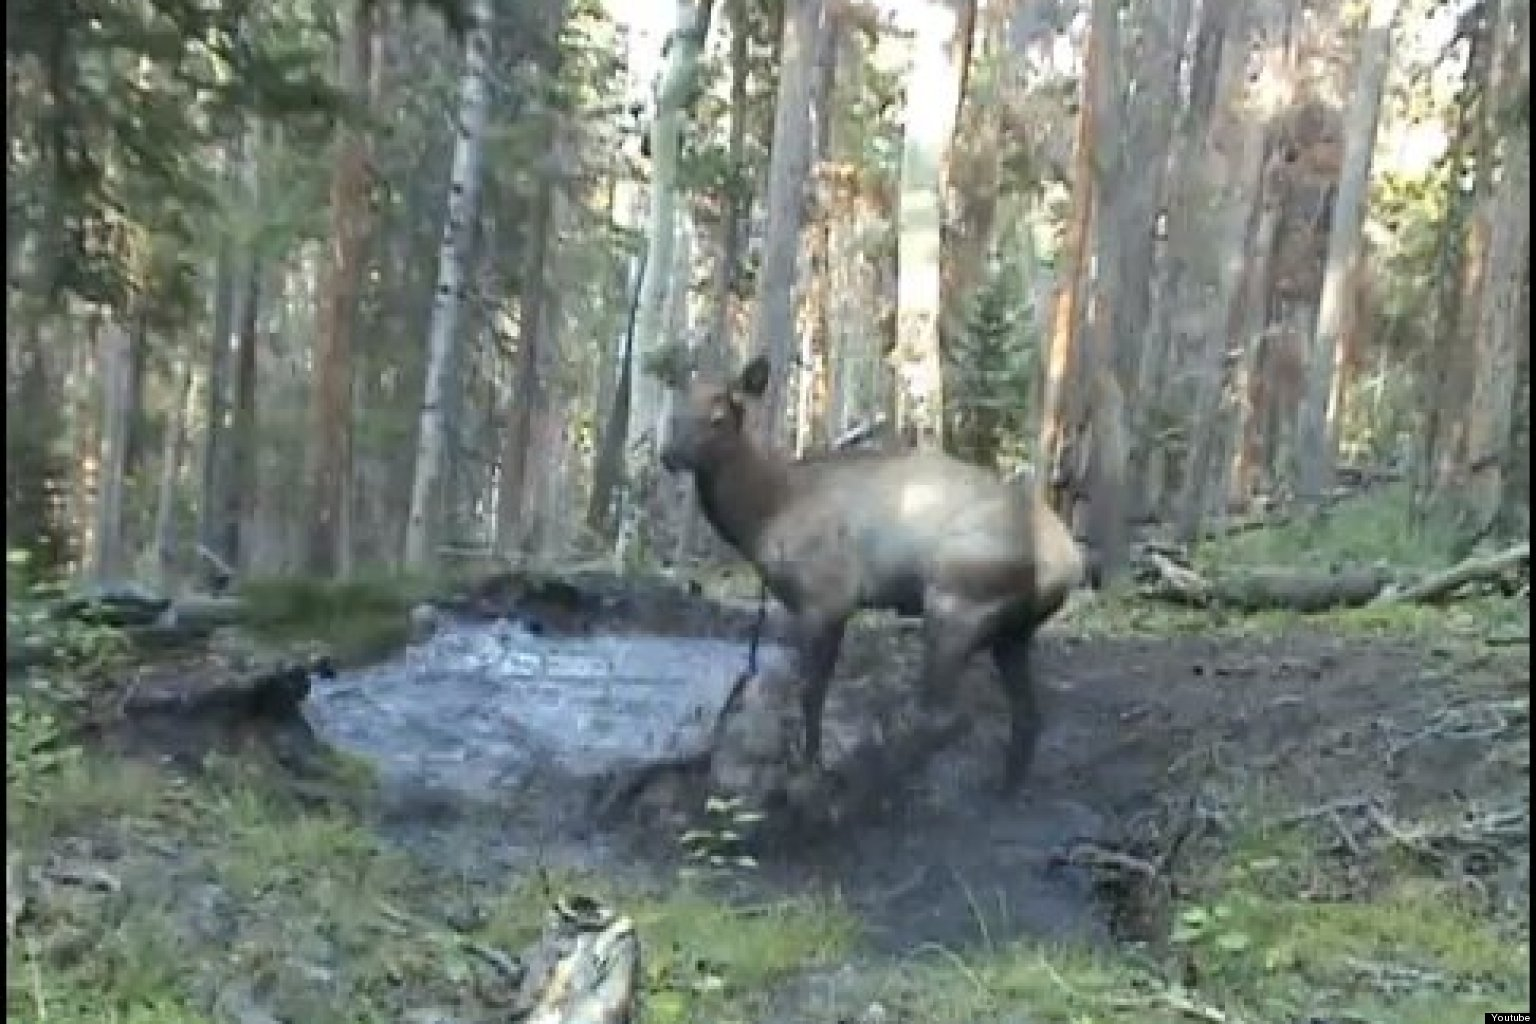 WATCH: Baby Elk Jumping In Puddles Is Pure Happiness